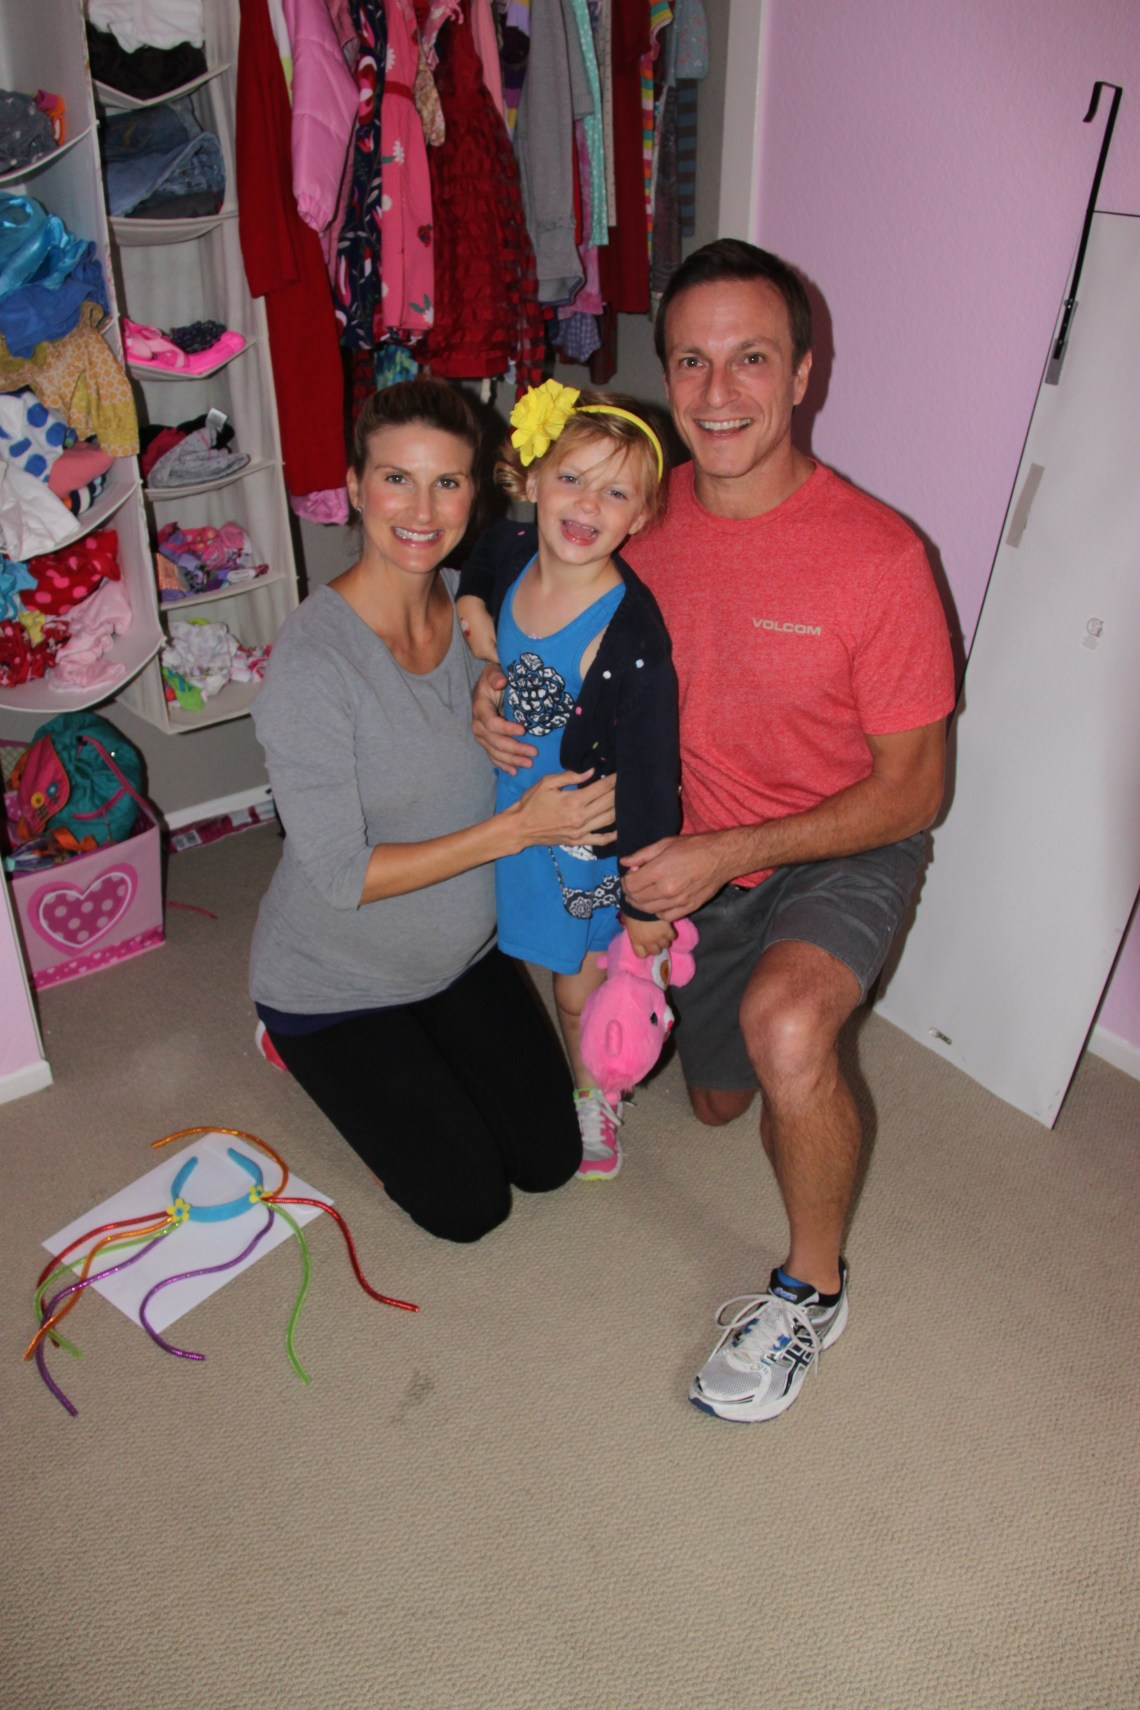 Before volunteers transfomed 5-year-old Raelyn Beckler's room into a haven fit for a princess, her family, including mom Rebecca and dad Greg, were sent on a Legoland Adventure. Here, the Becklers flash a smile before leaving. Photo: Shana Sutherland